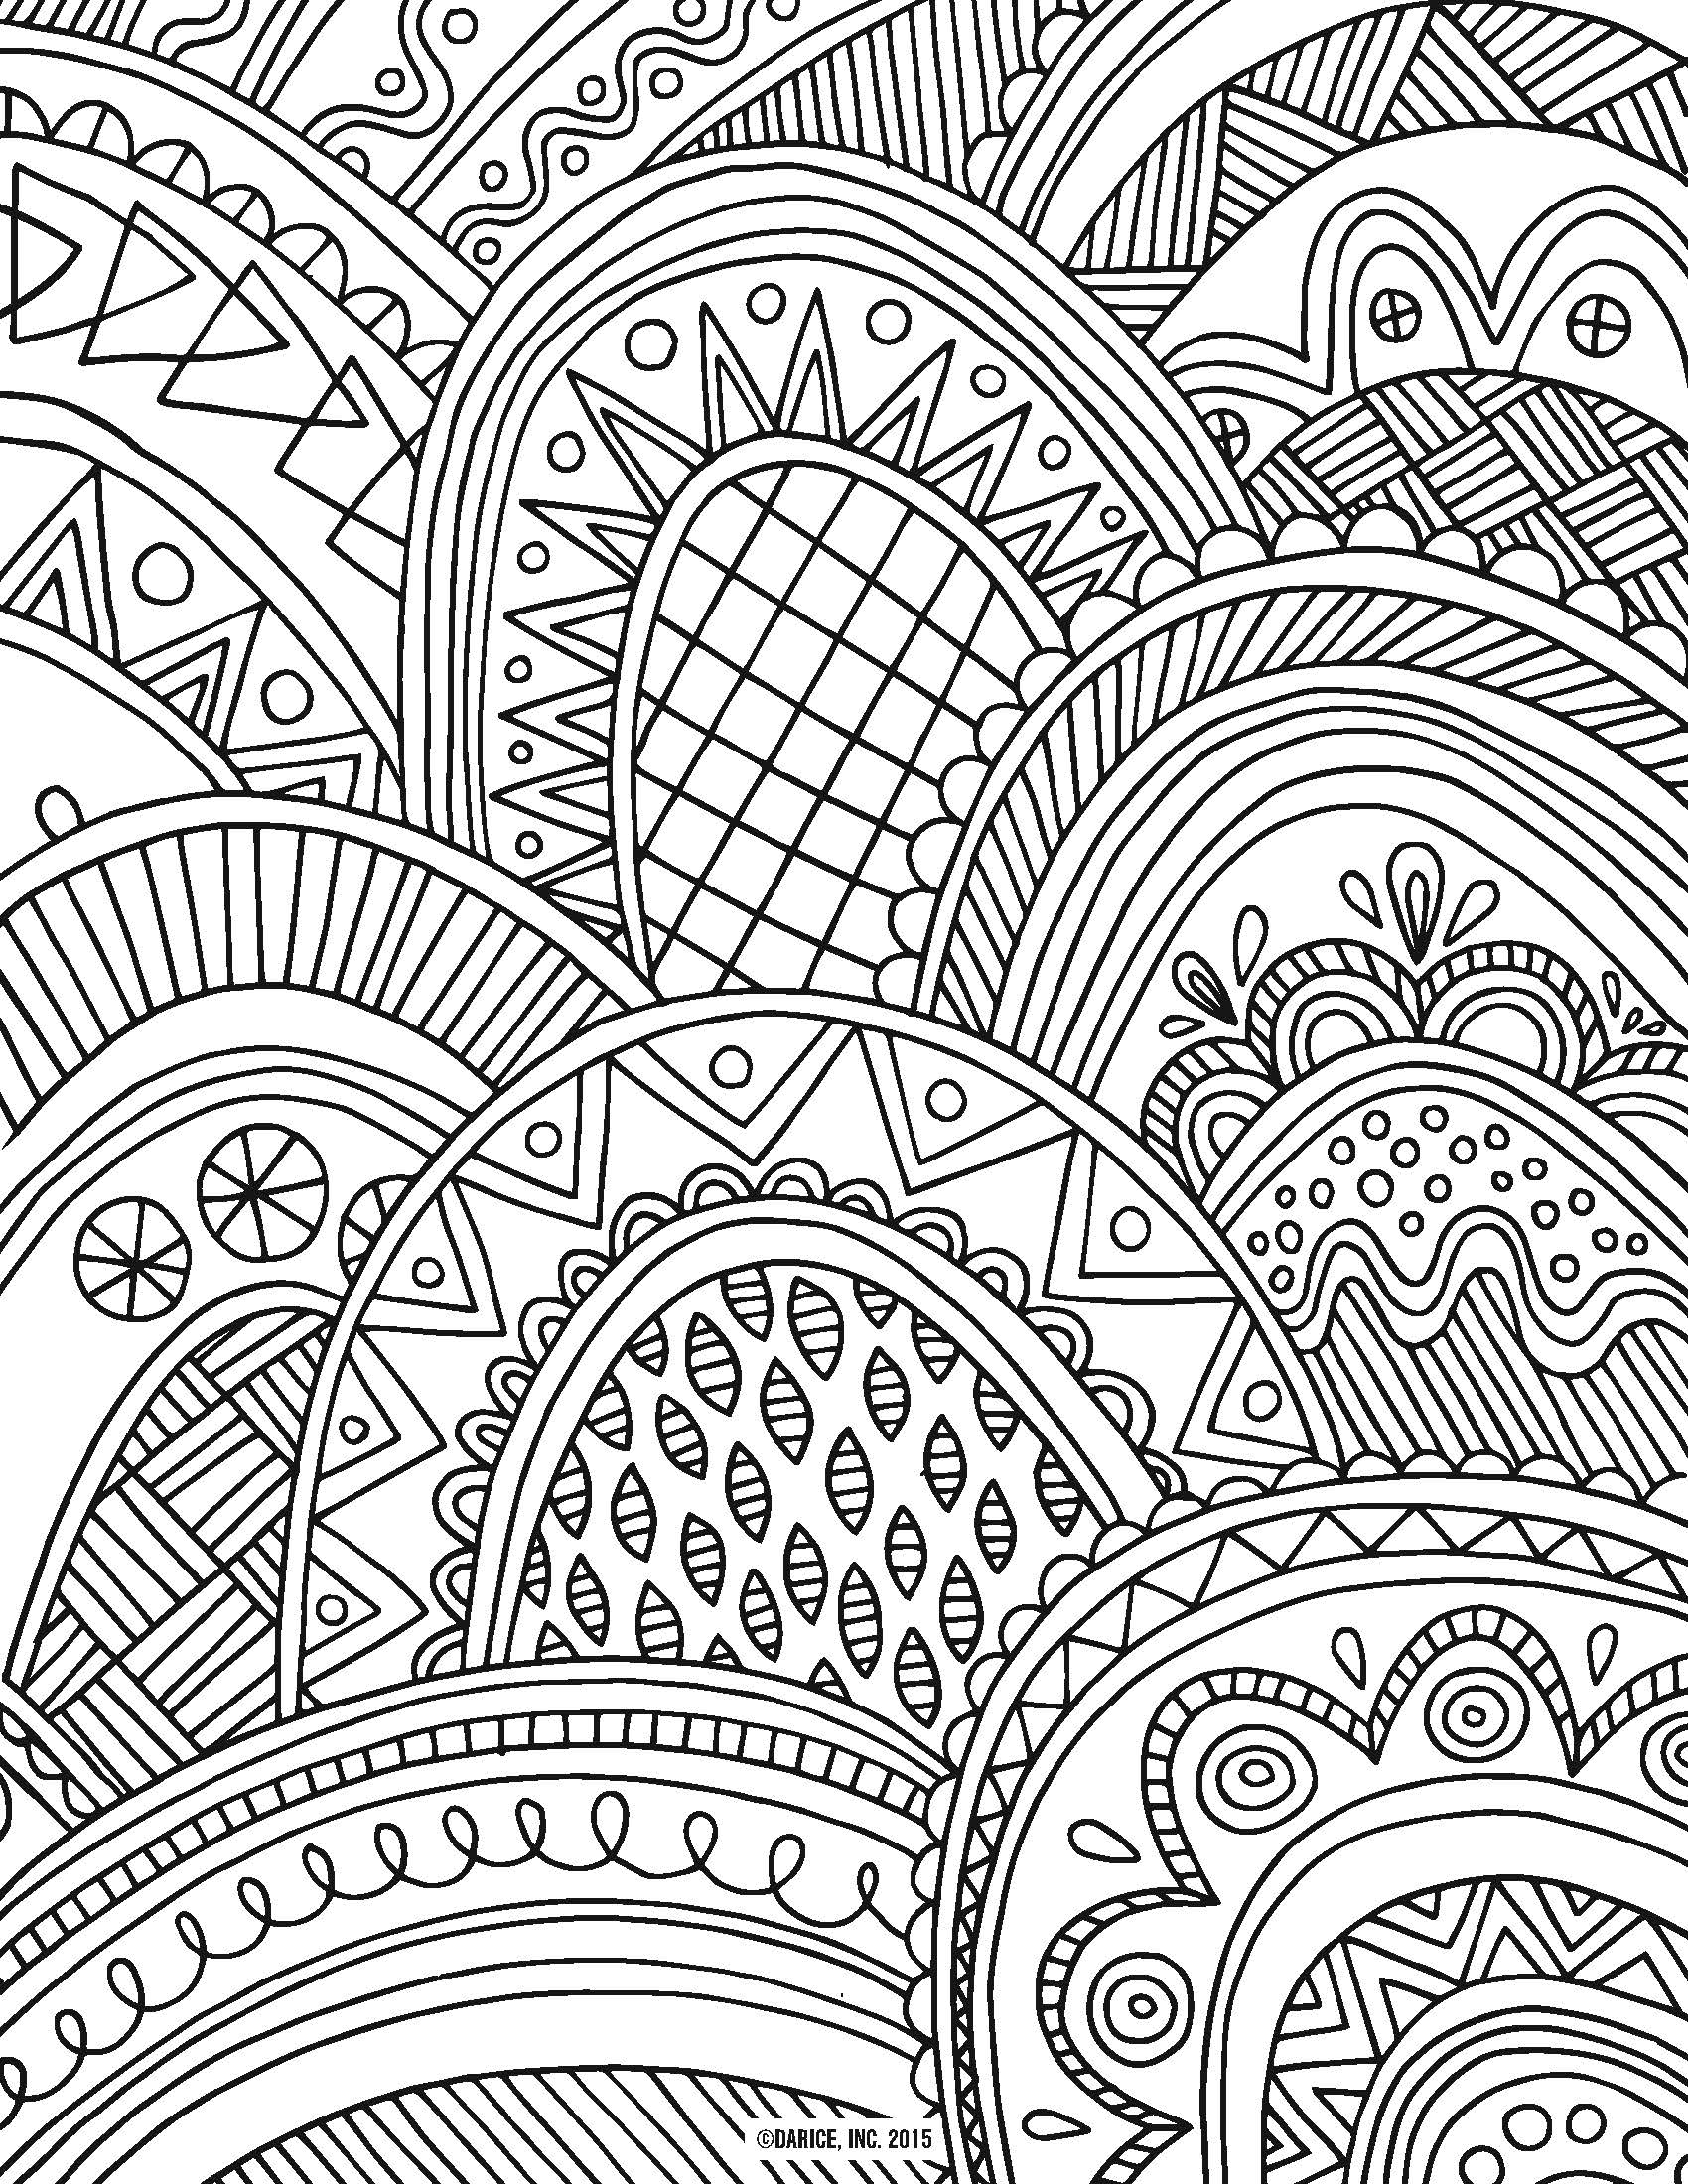 9 Free Printable Adult Coloring Pages | Pat Catan's Blog - Free Printable Coloring Designs For Adults